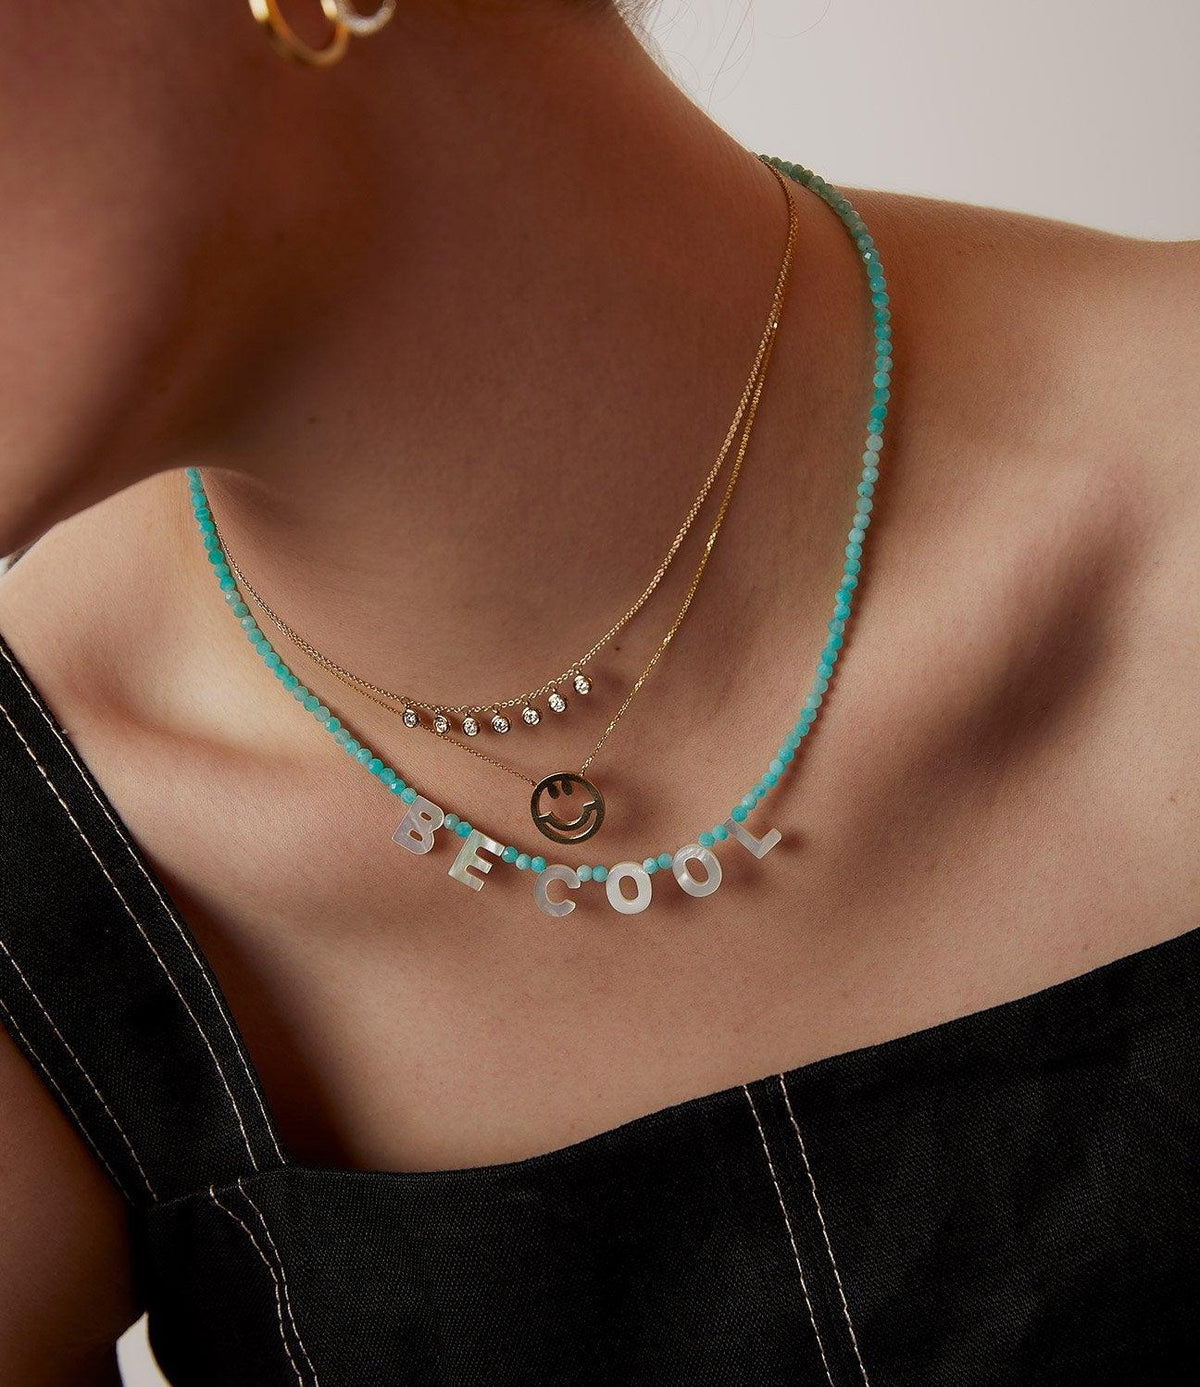 'Be Cool' Necklace